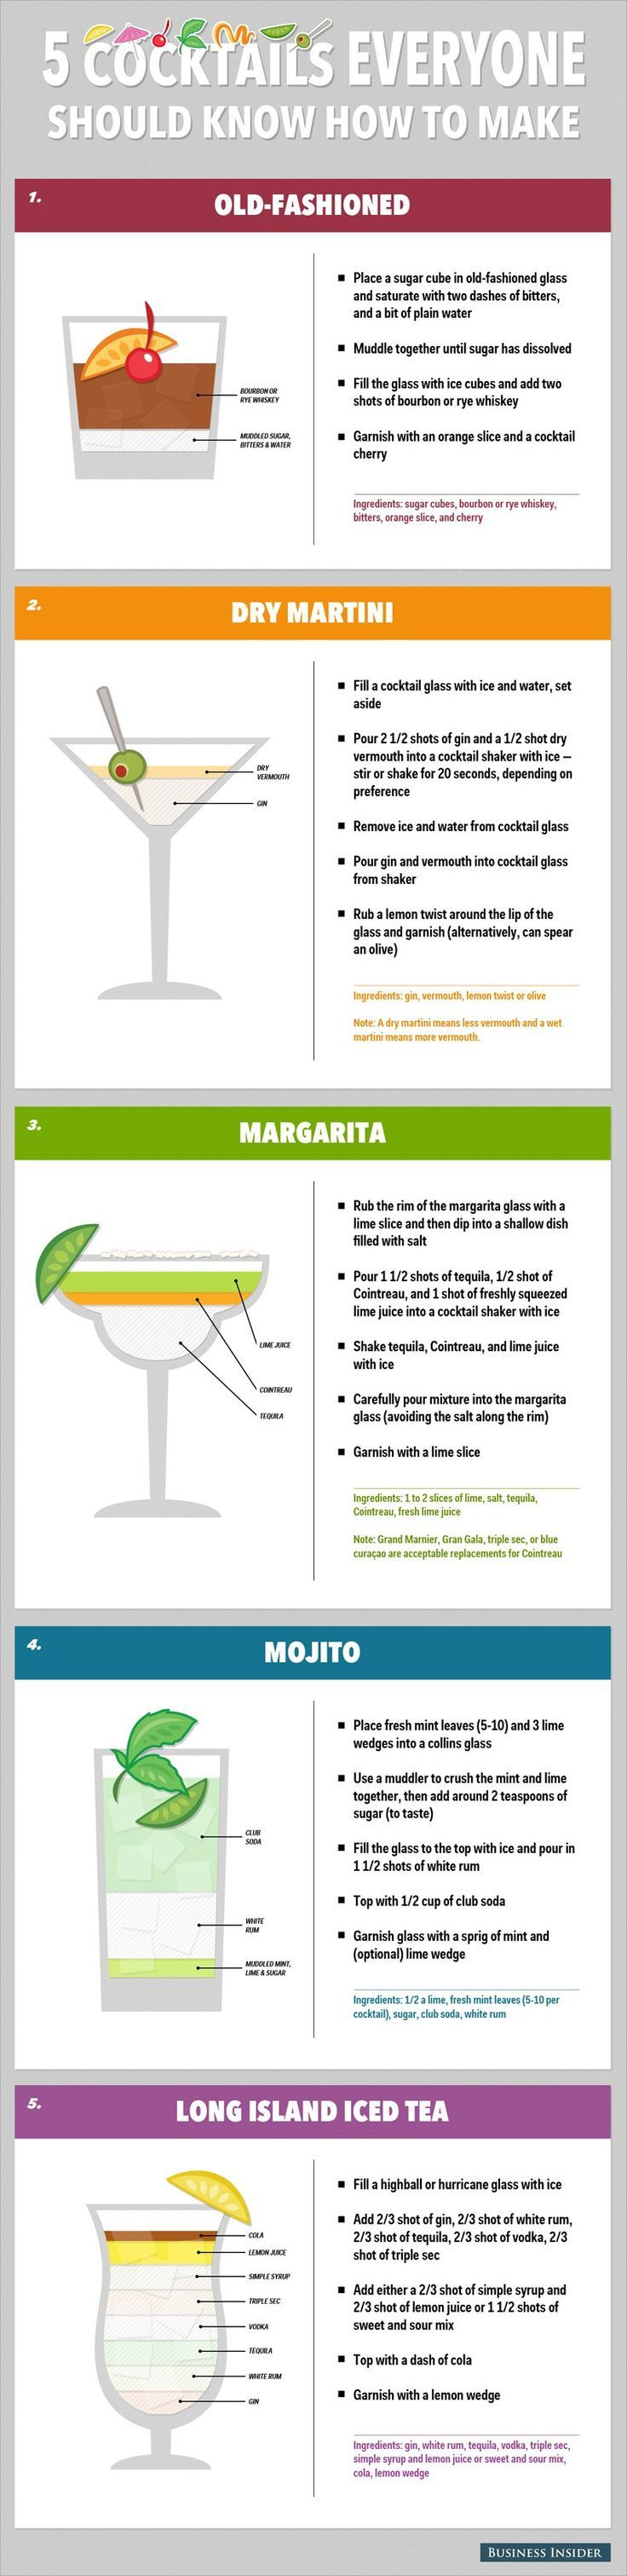 17 best images about home bartending on pinterest bar drinks bartending tips and wine and beer - Make good house wine tips vinter ...